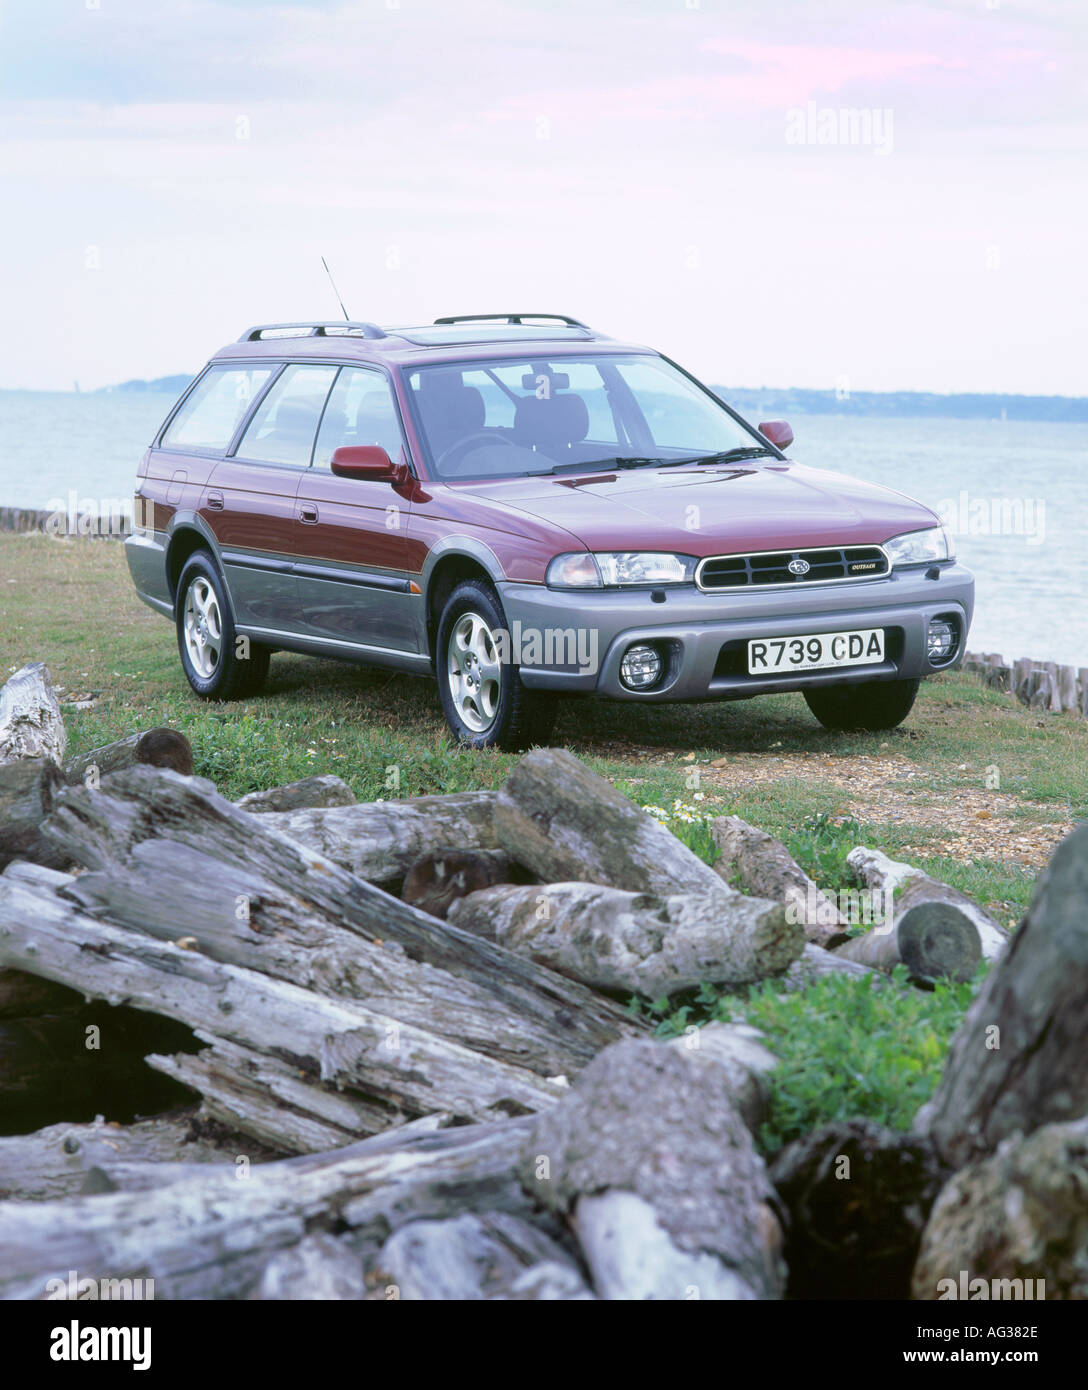 1998 subaru legacy outback stock photo alamy https www alamy com 1998 subaru legacy outback image1062957 html